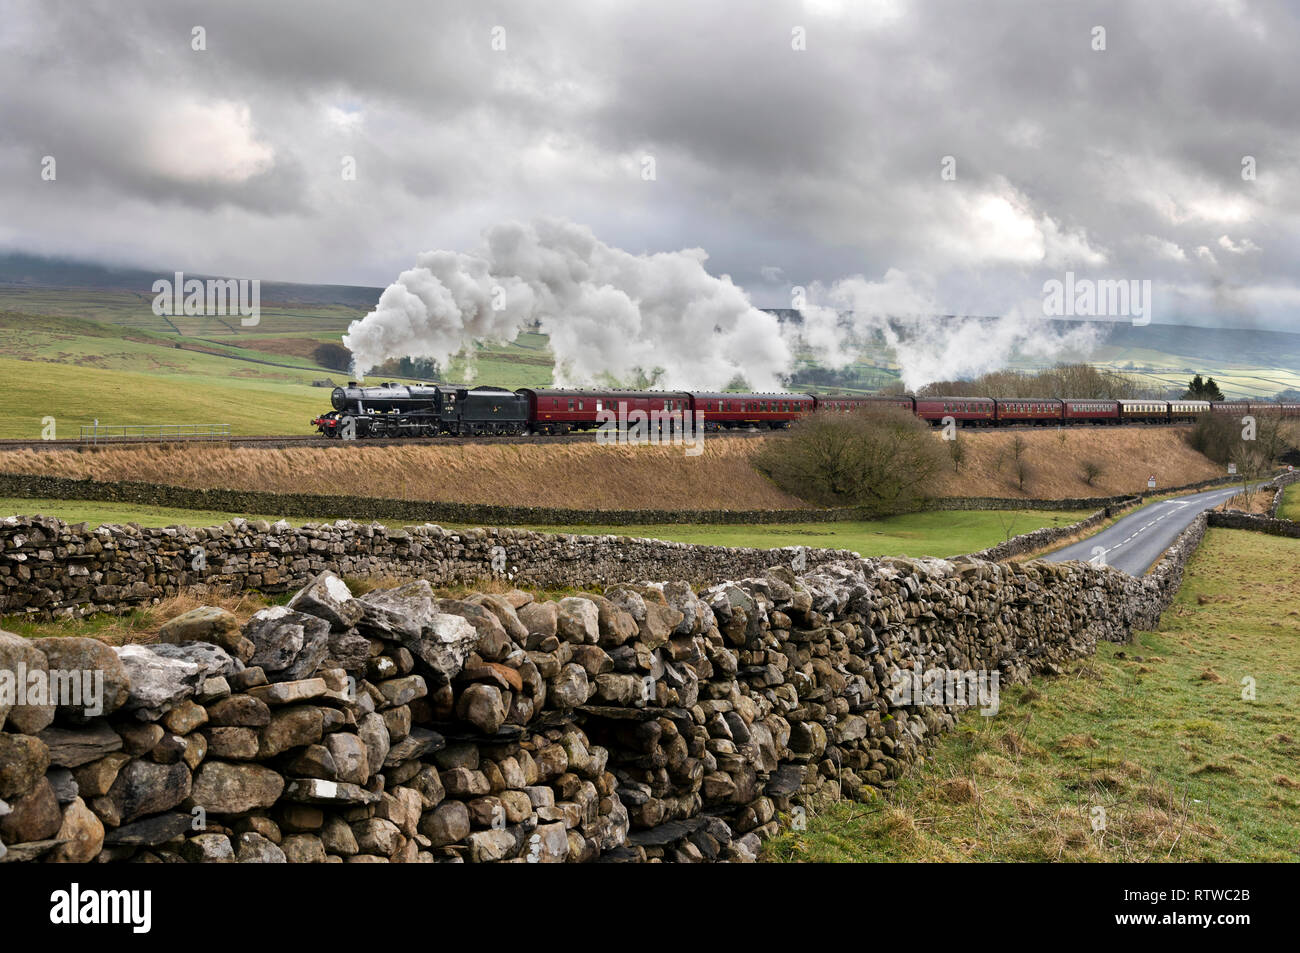 Steam Train In Countryside Stock Photos & Steam Train In Countryside